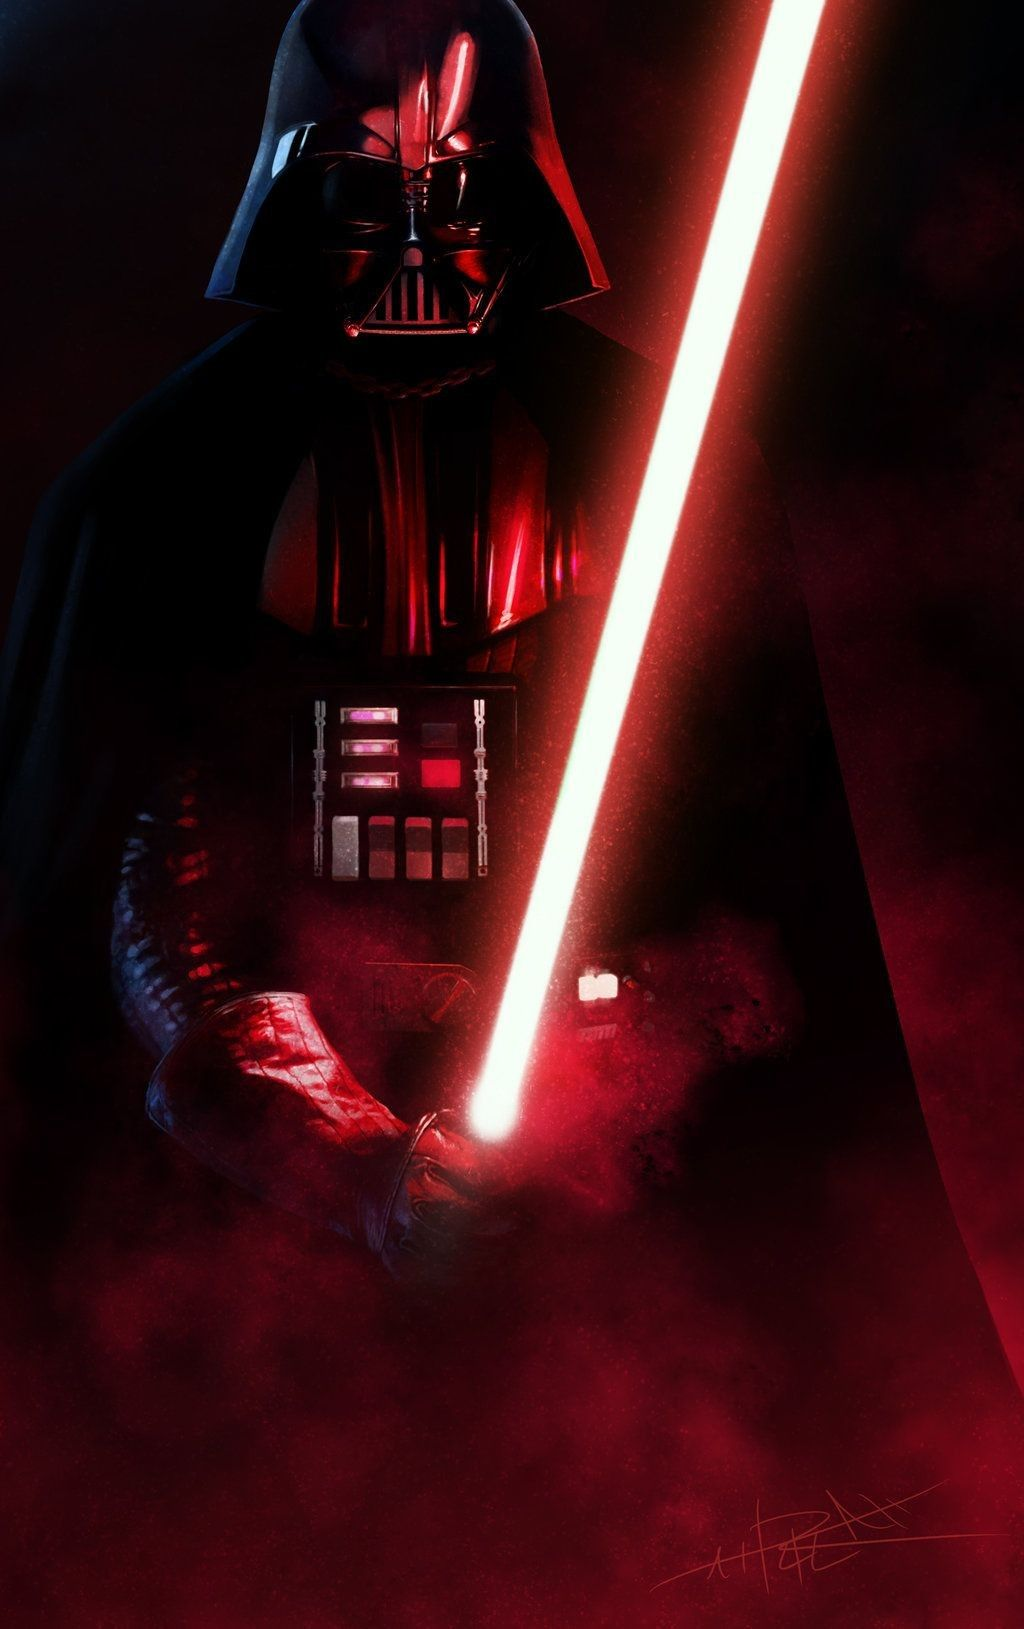 I Recently Made A Phone Wallpaper Album With A Star Wars Theme If Anyone Is Intrested Star Wars Art Star Wars Artwork Star Wars Sith